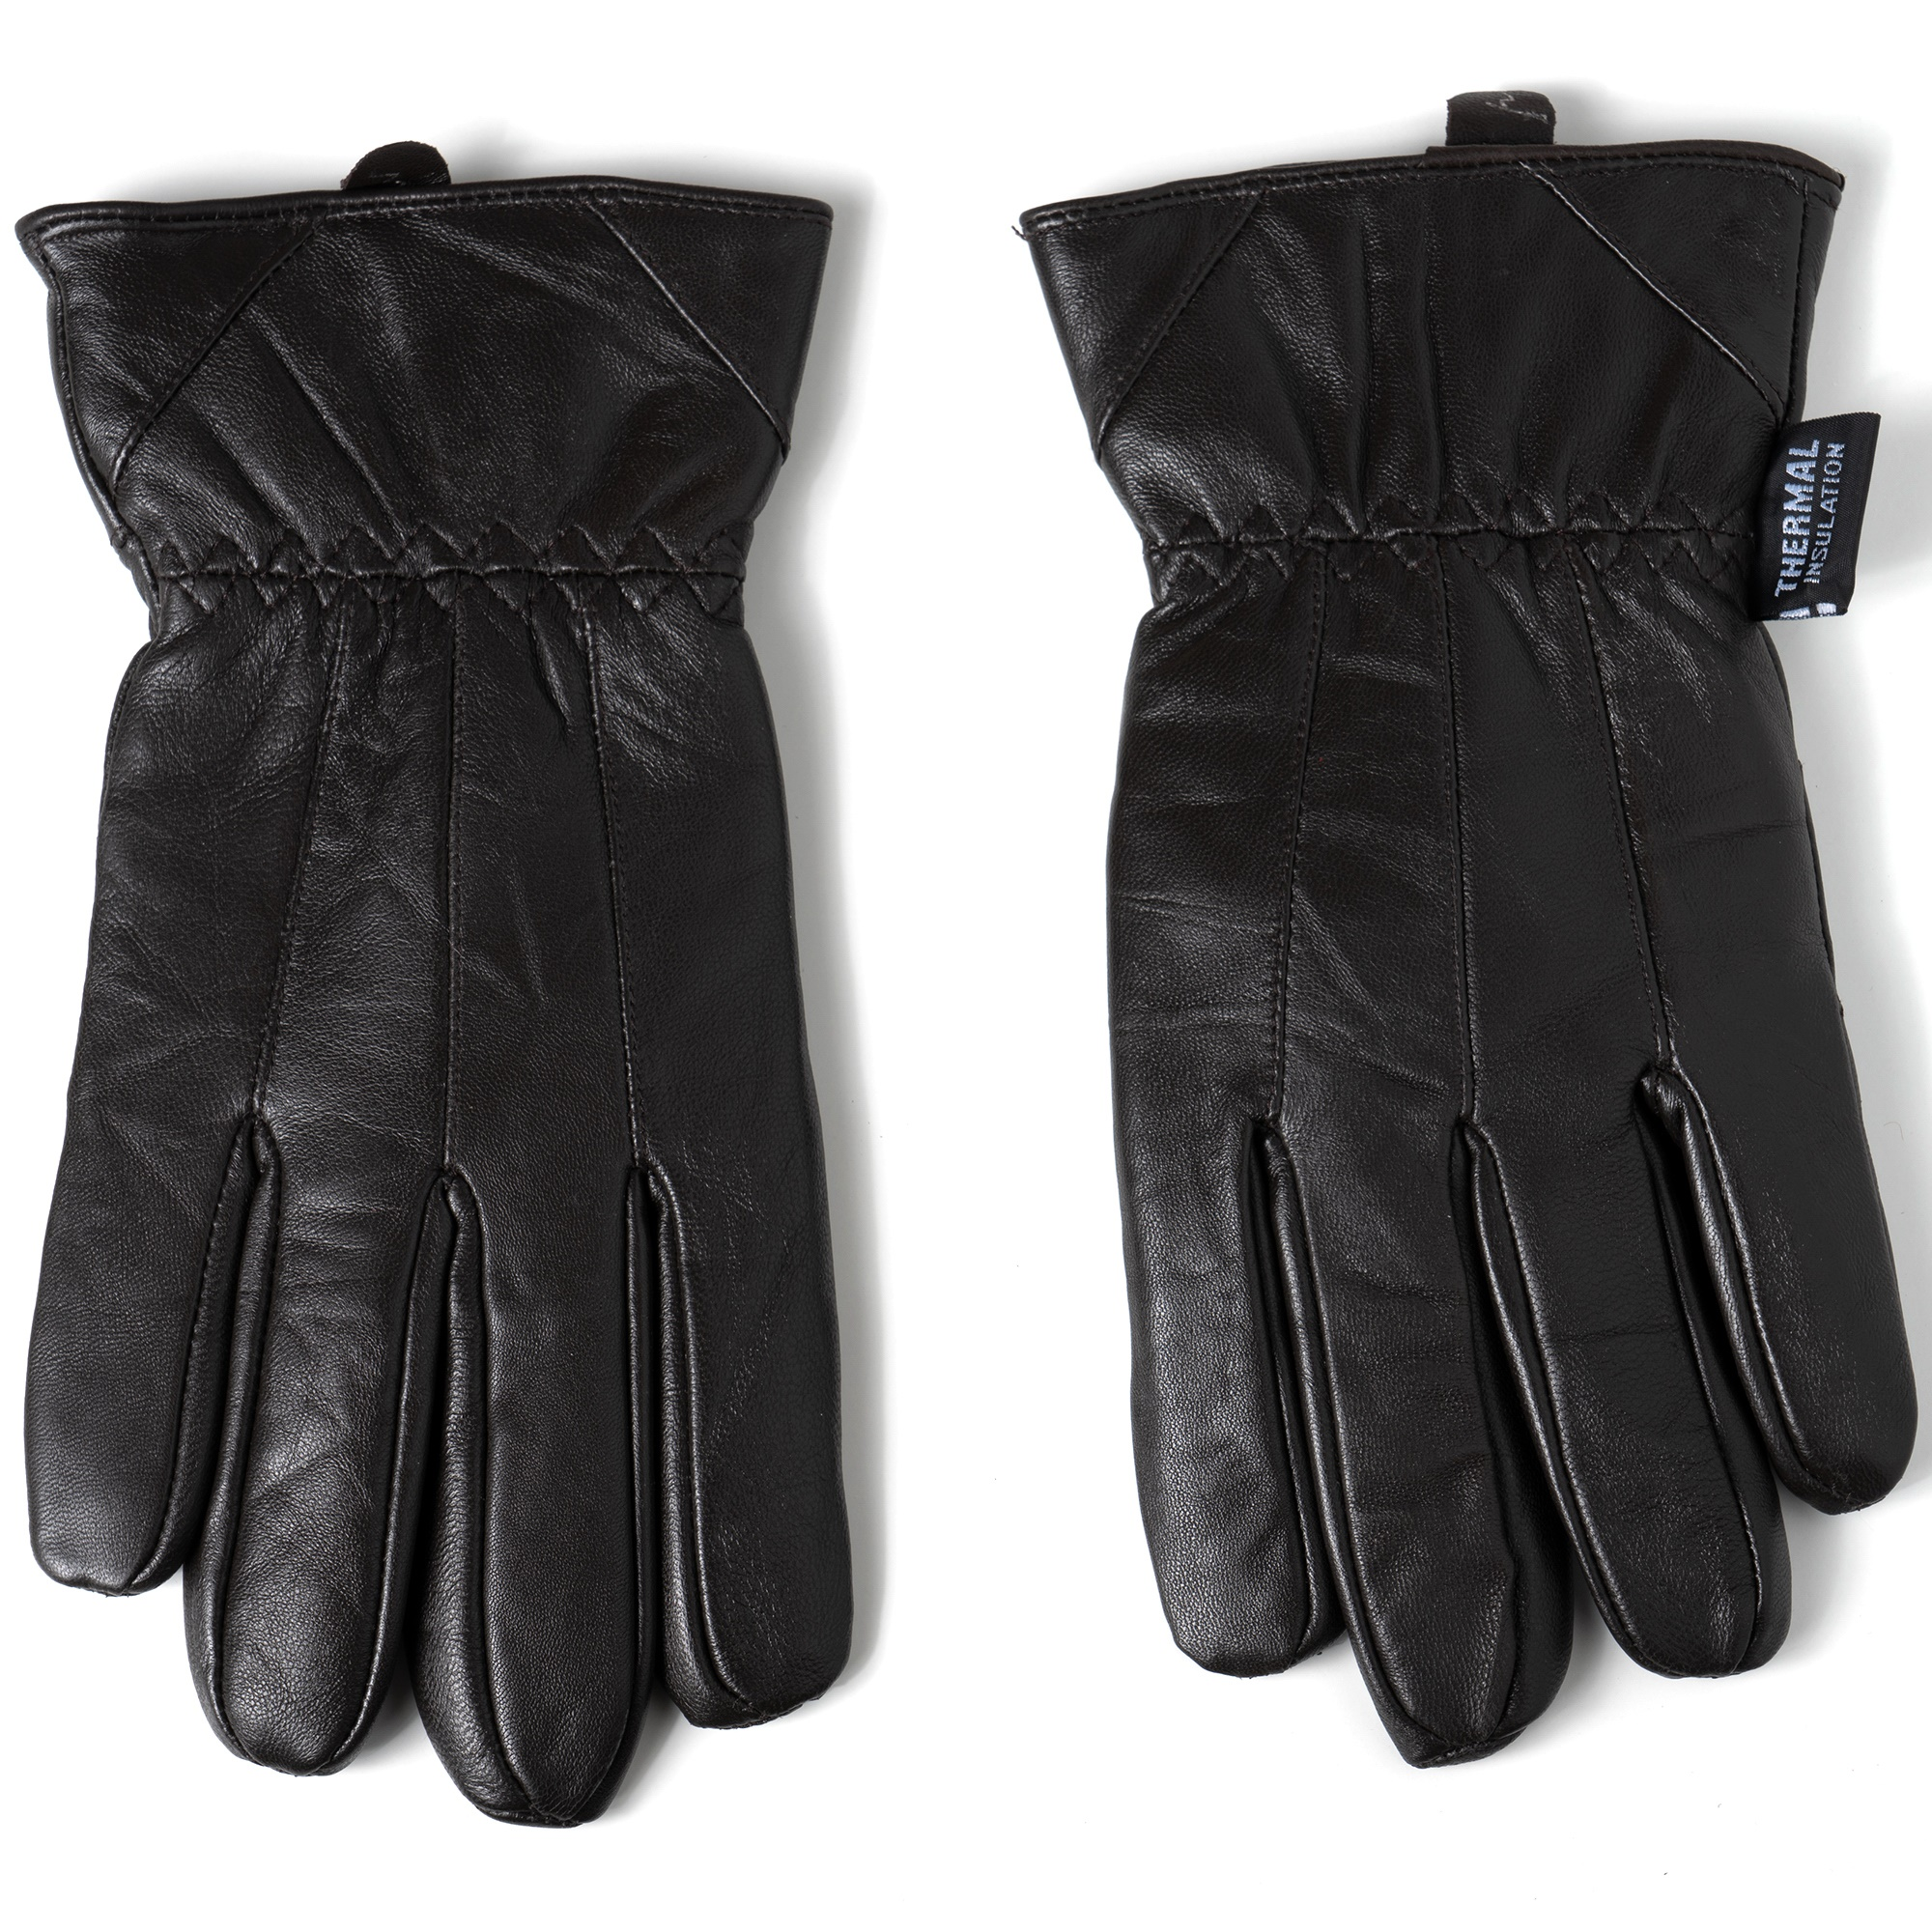 Alpine-Swiss-Mens-Touch-Screen-Gloves-Leather-Thermal-Lined-Phone-Texting-Gloves thumbnail 24